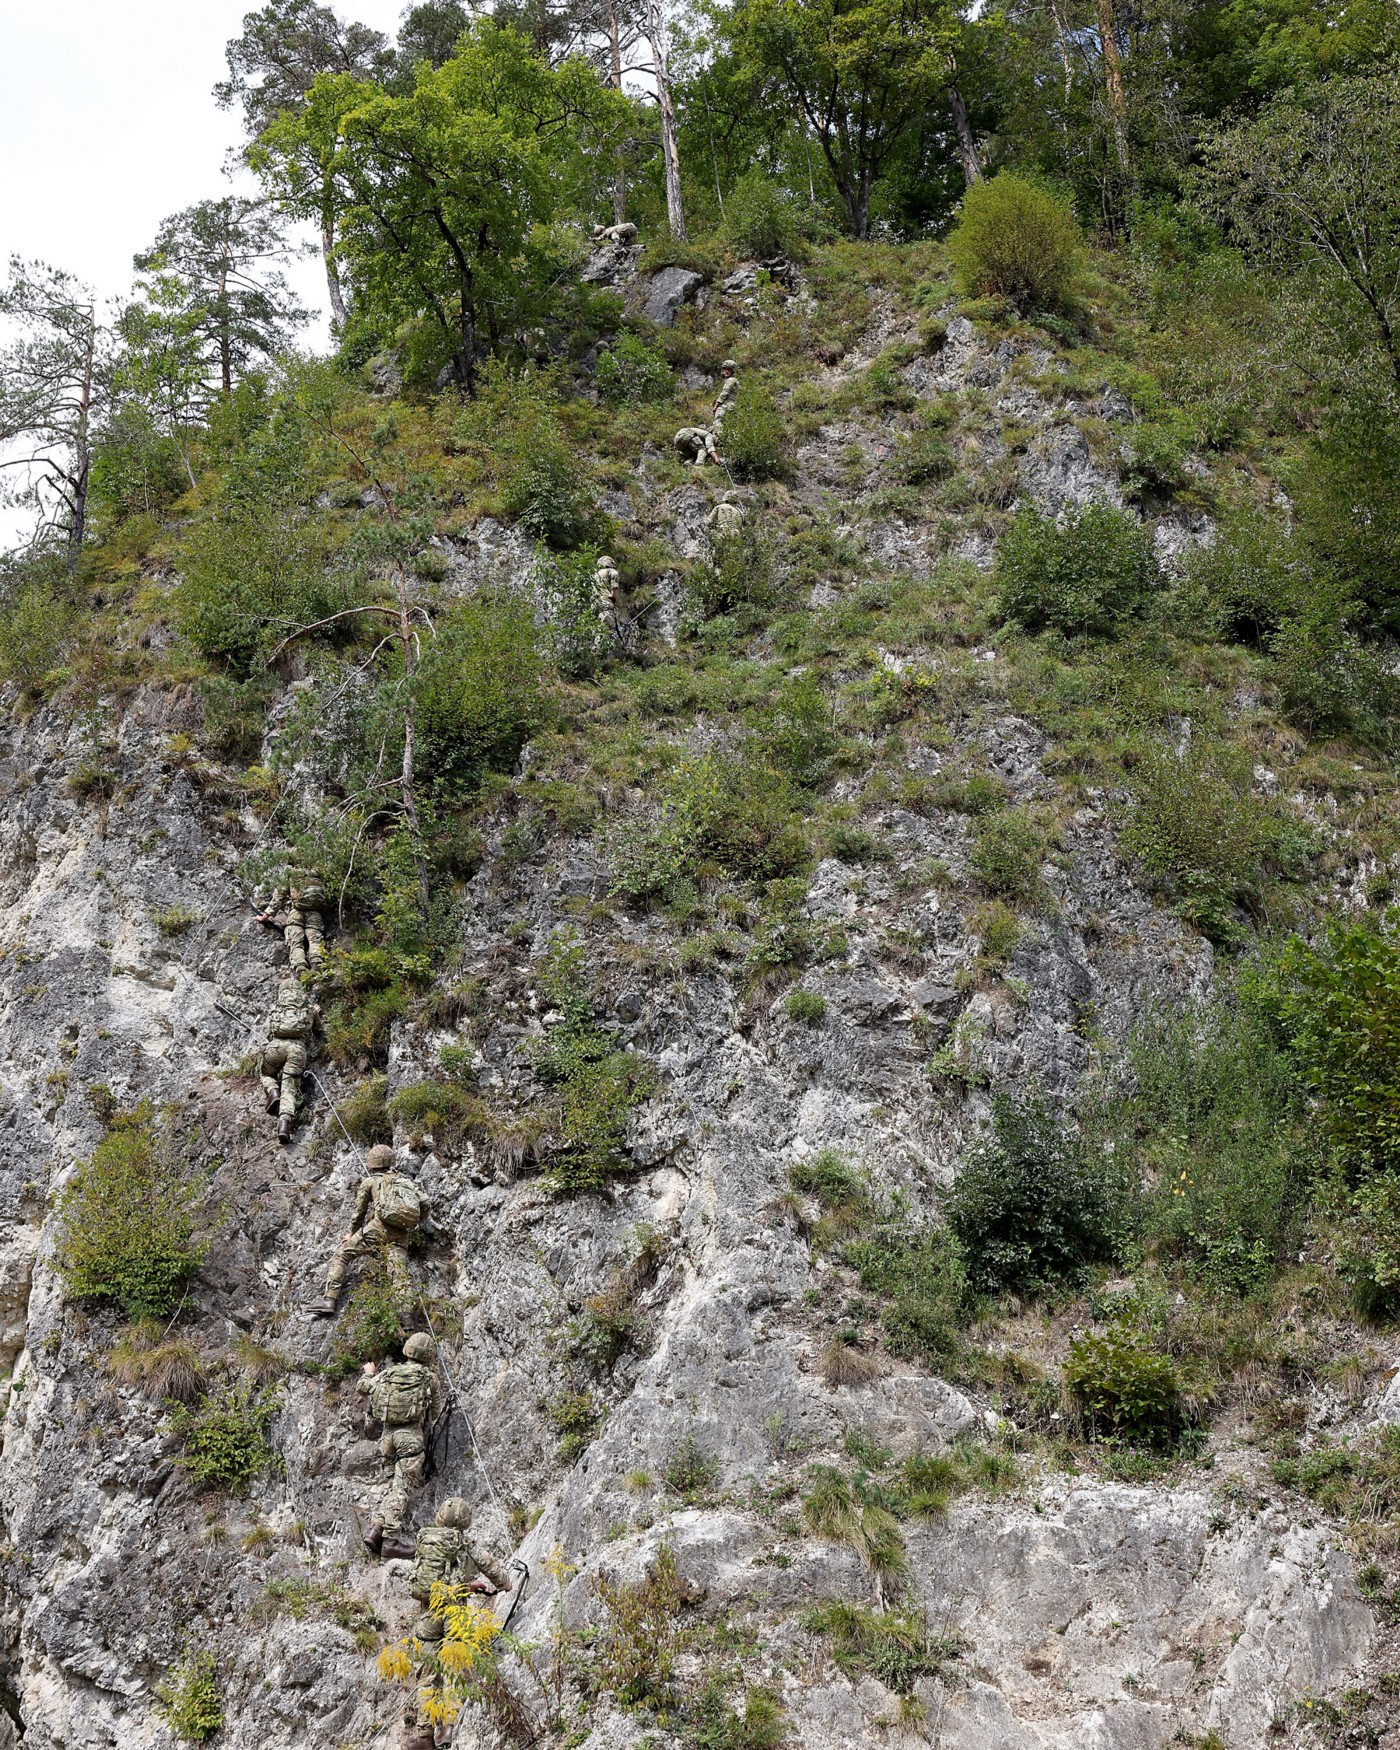 45 Commando carrying out fixed line climbing in Slovenian mountains